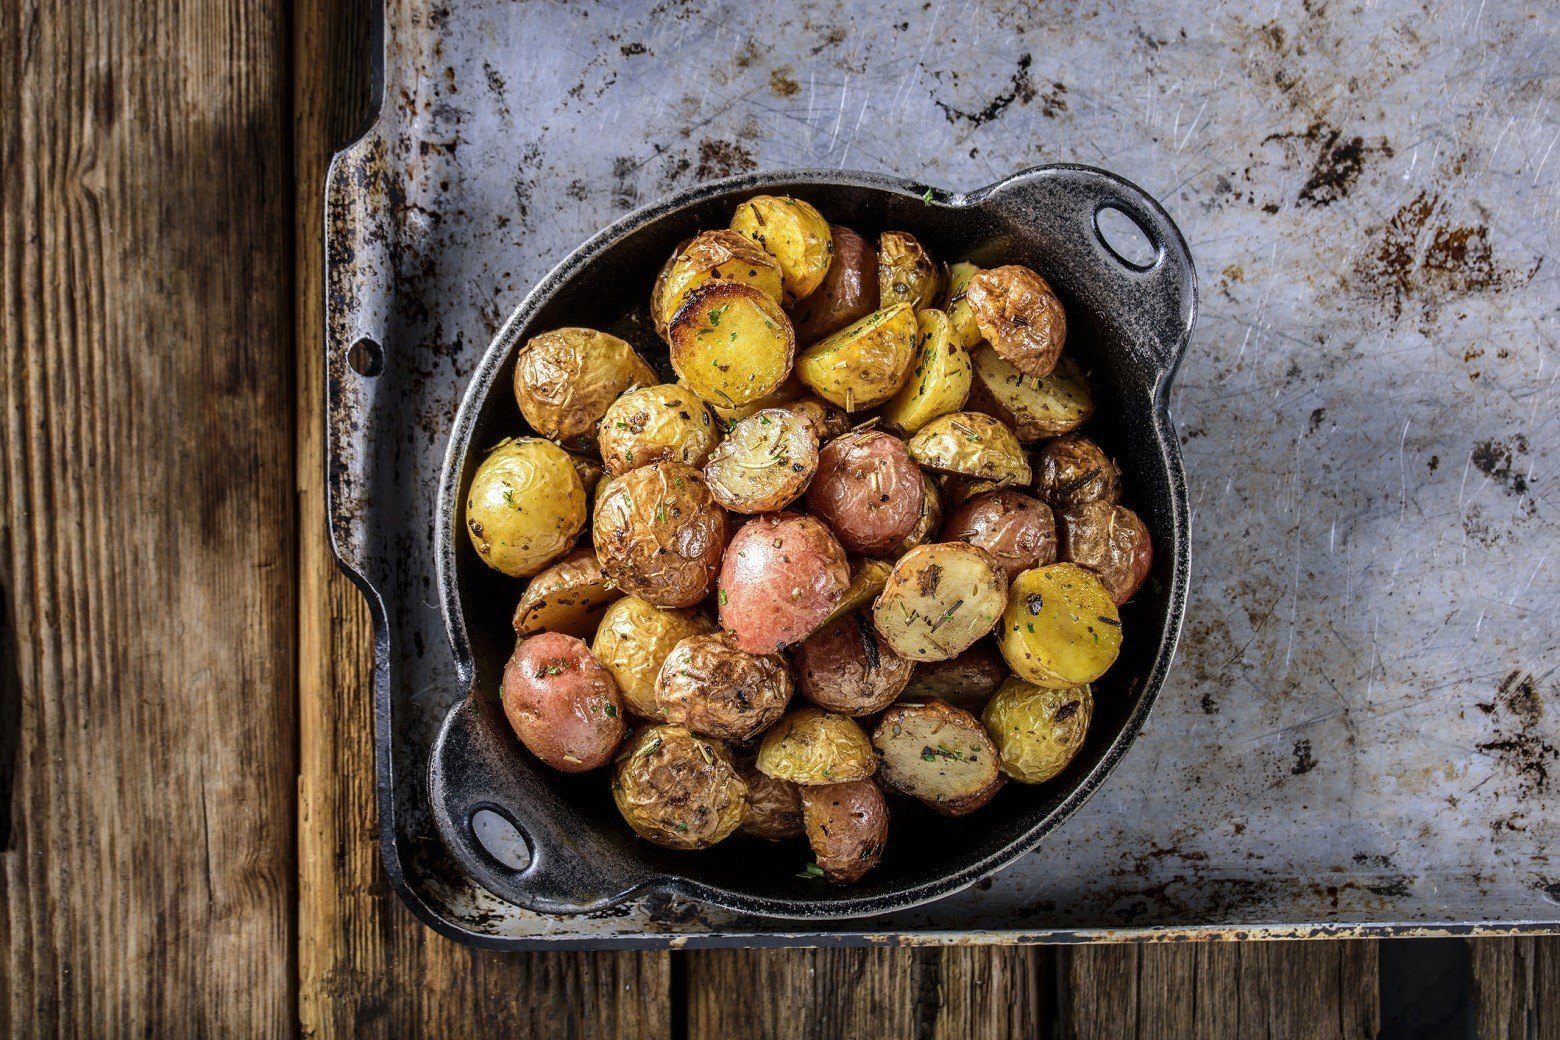 50 best potato recipes mashed and beyond orlando sentinel for Different ways to cook russet potatoes